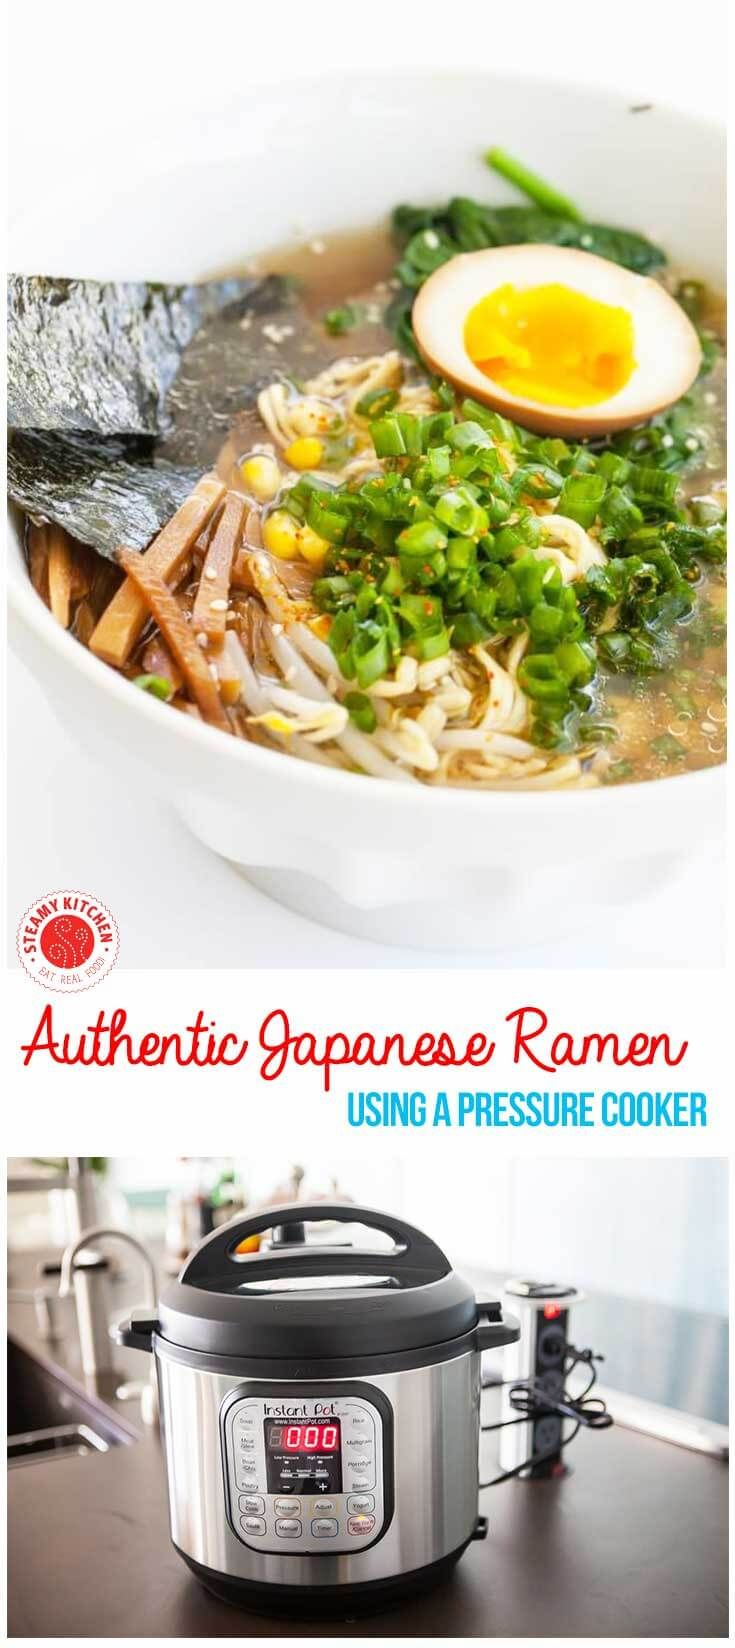 Make authentic Japanese ramen broth with a pressure cooker. Simple, step by step recipe. ~ http://steamykitchen.com